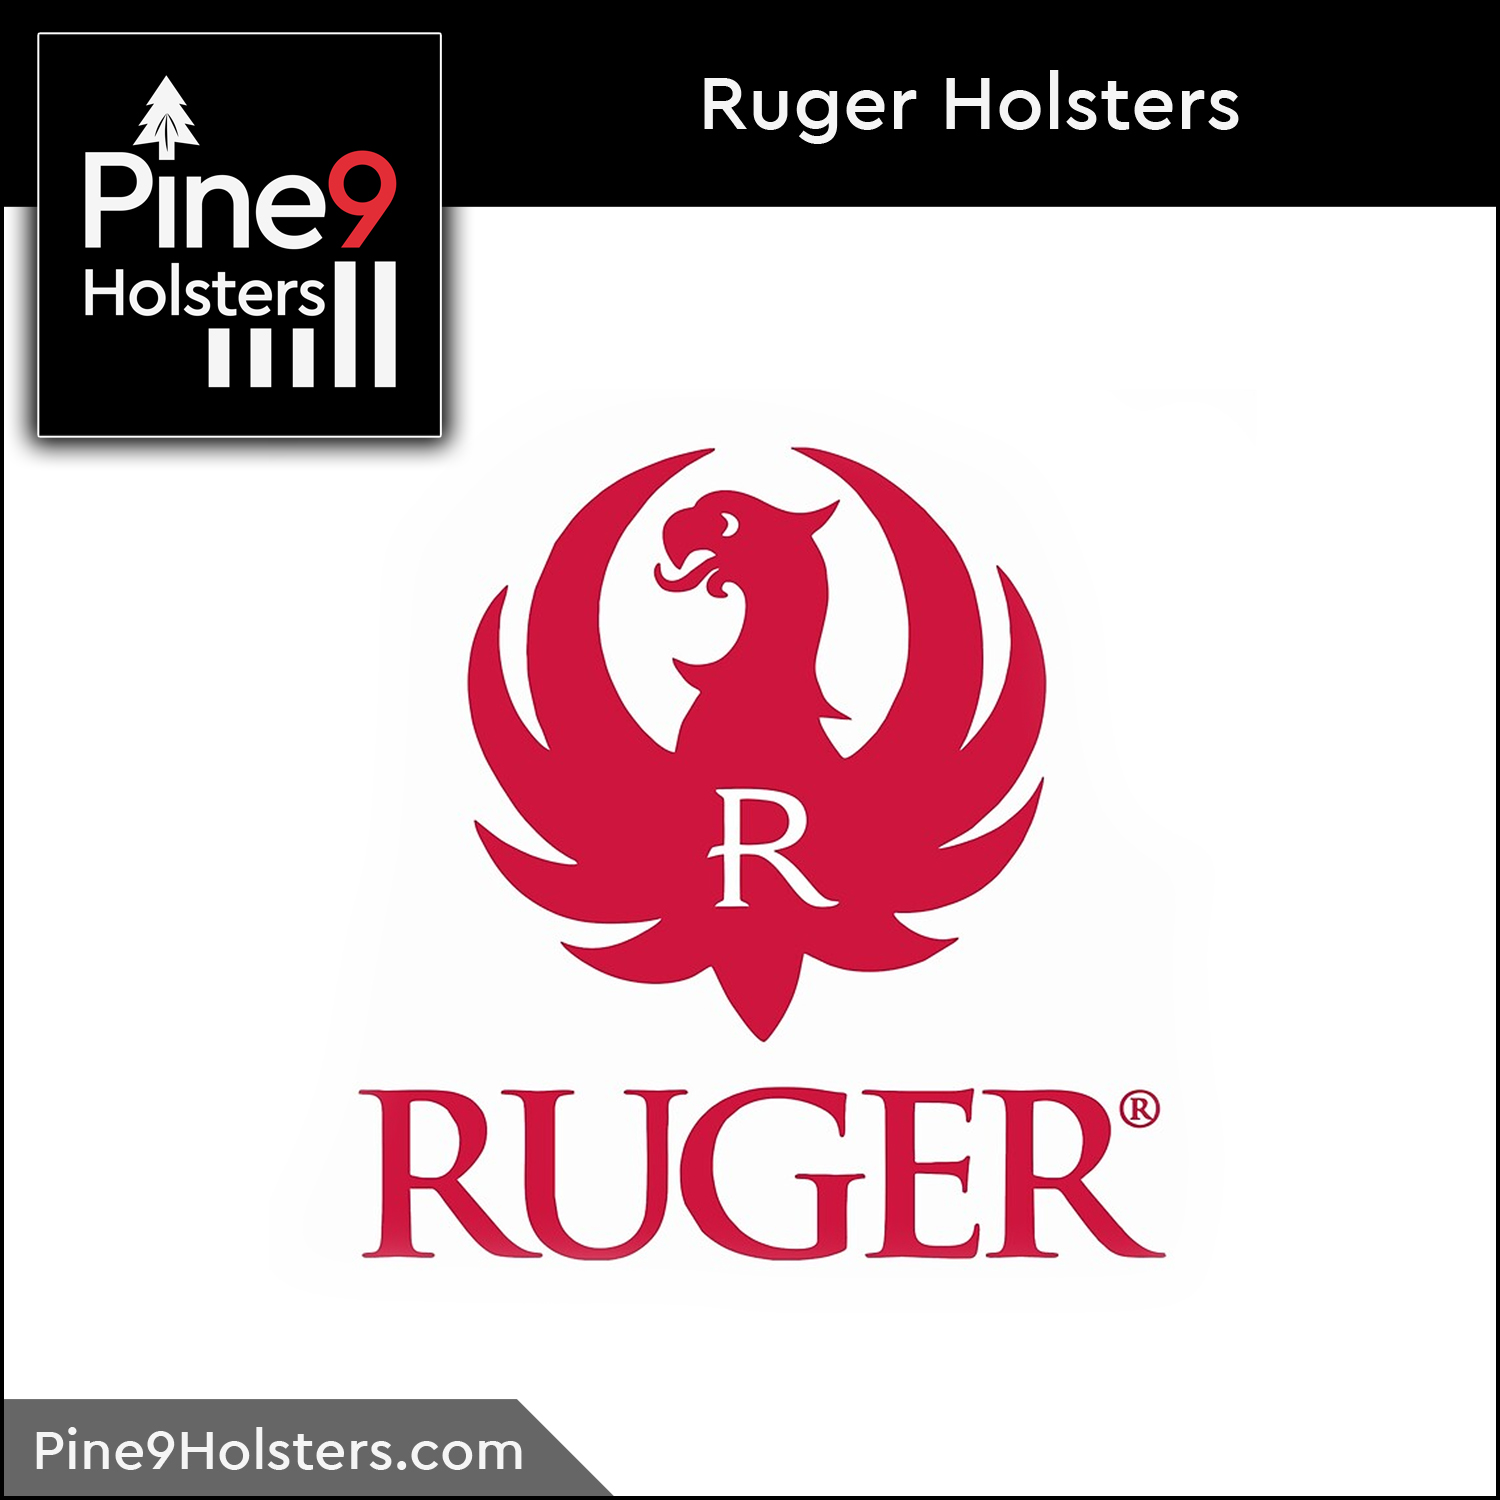 Pine9 Holsters Ruger